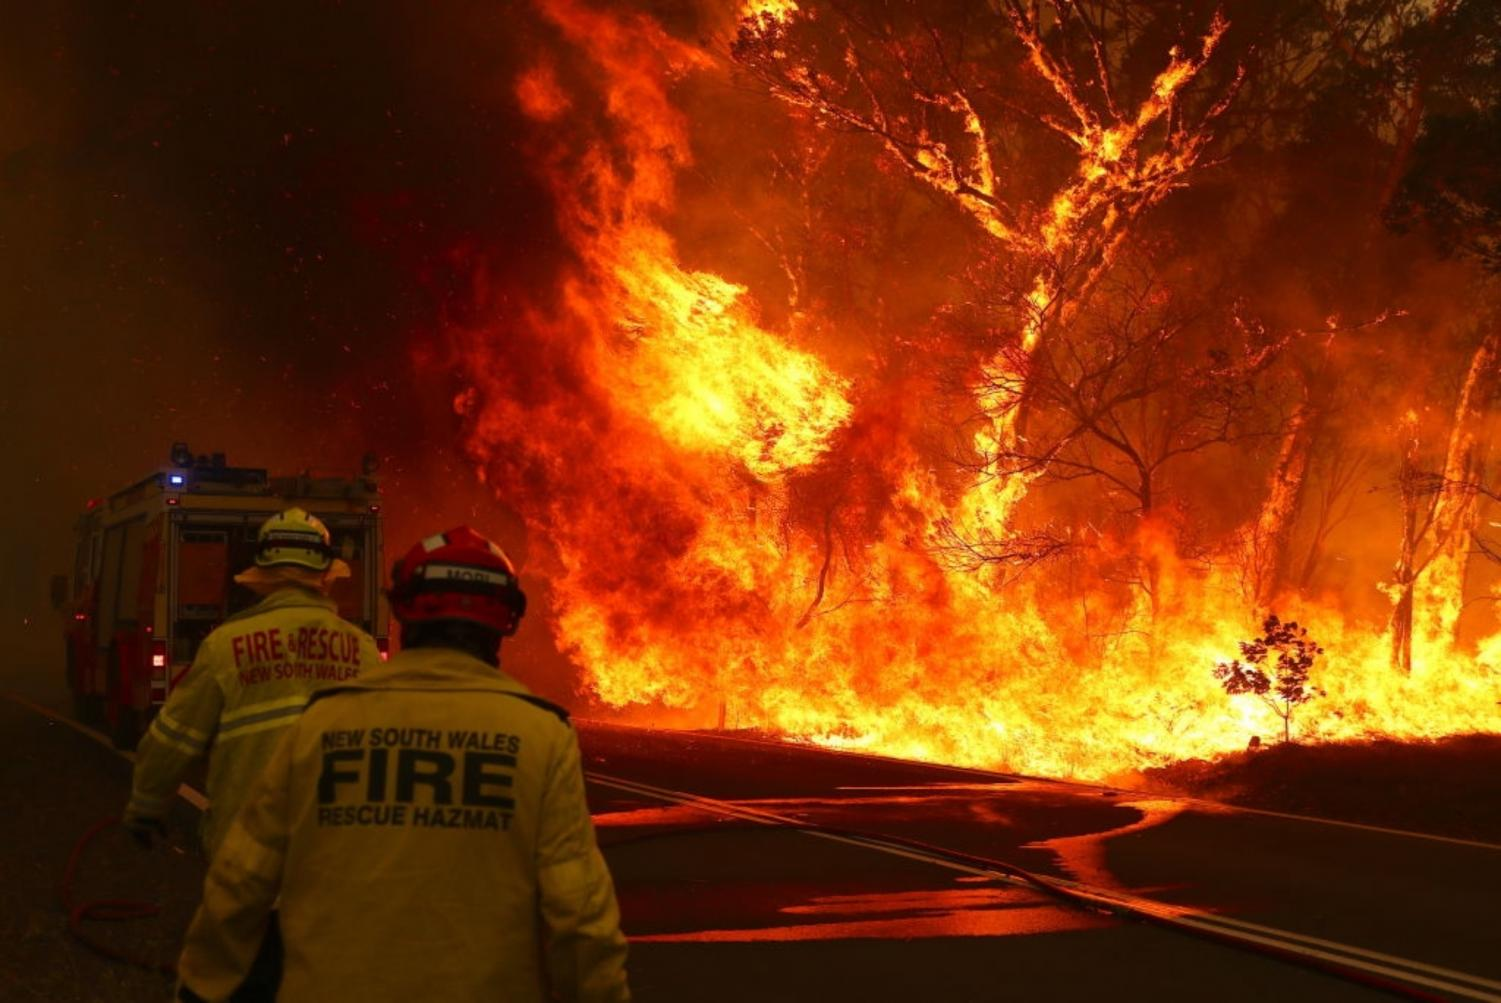 Ramos grew up in New South Wales close to where the fires raged.